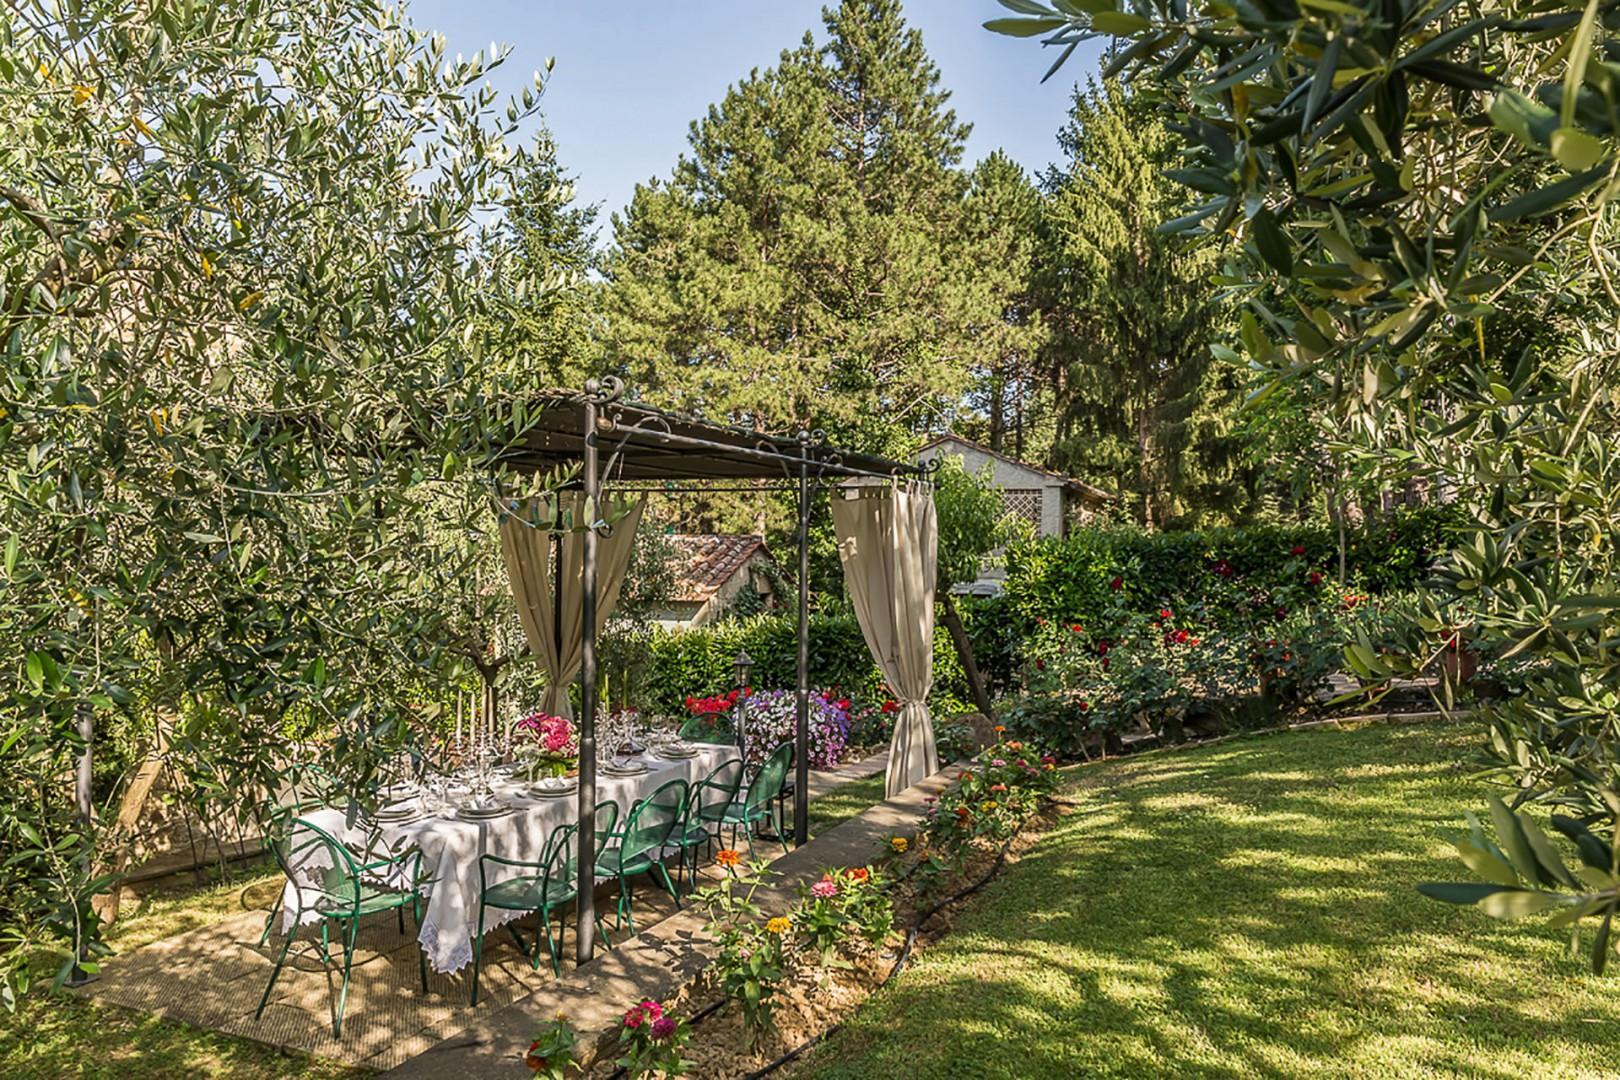 The dreamy pergola for dining or relaxing is just outside the villa.